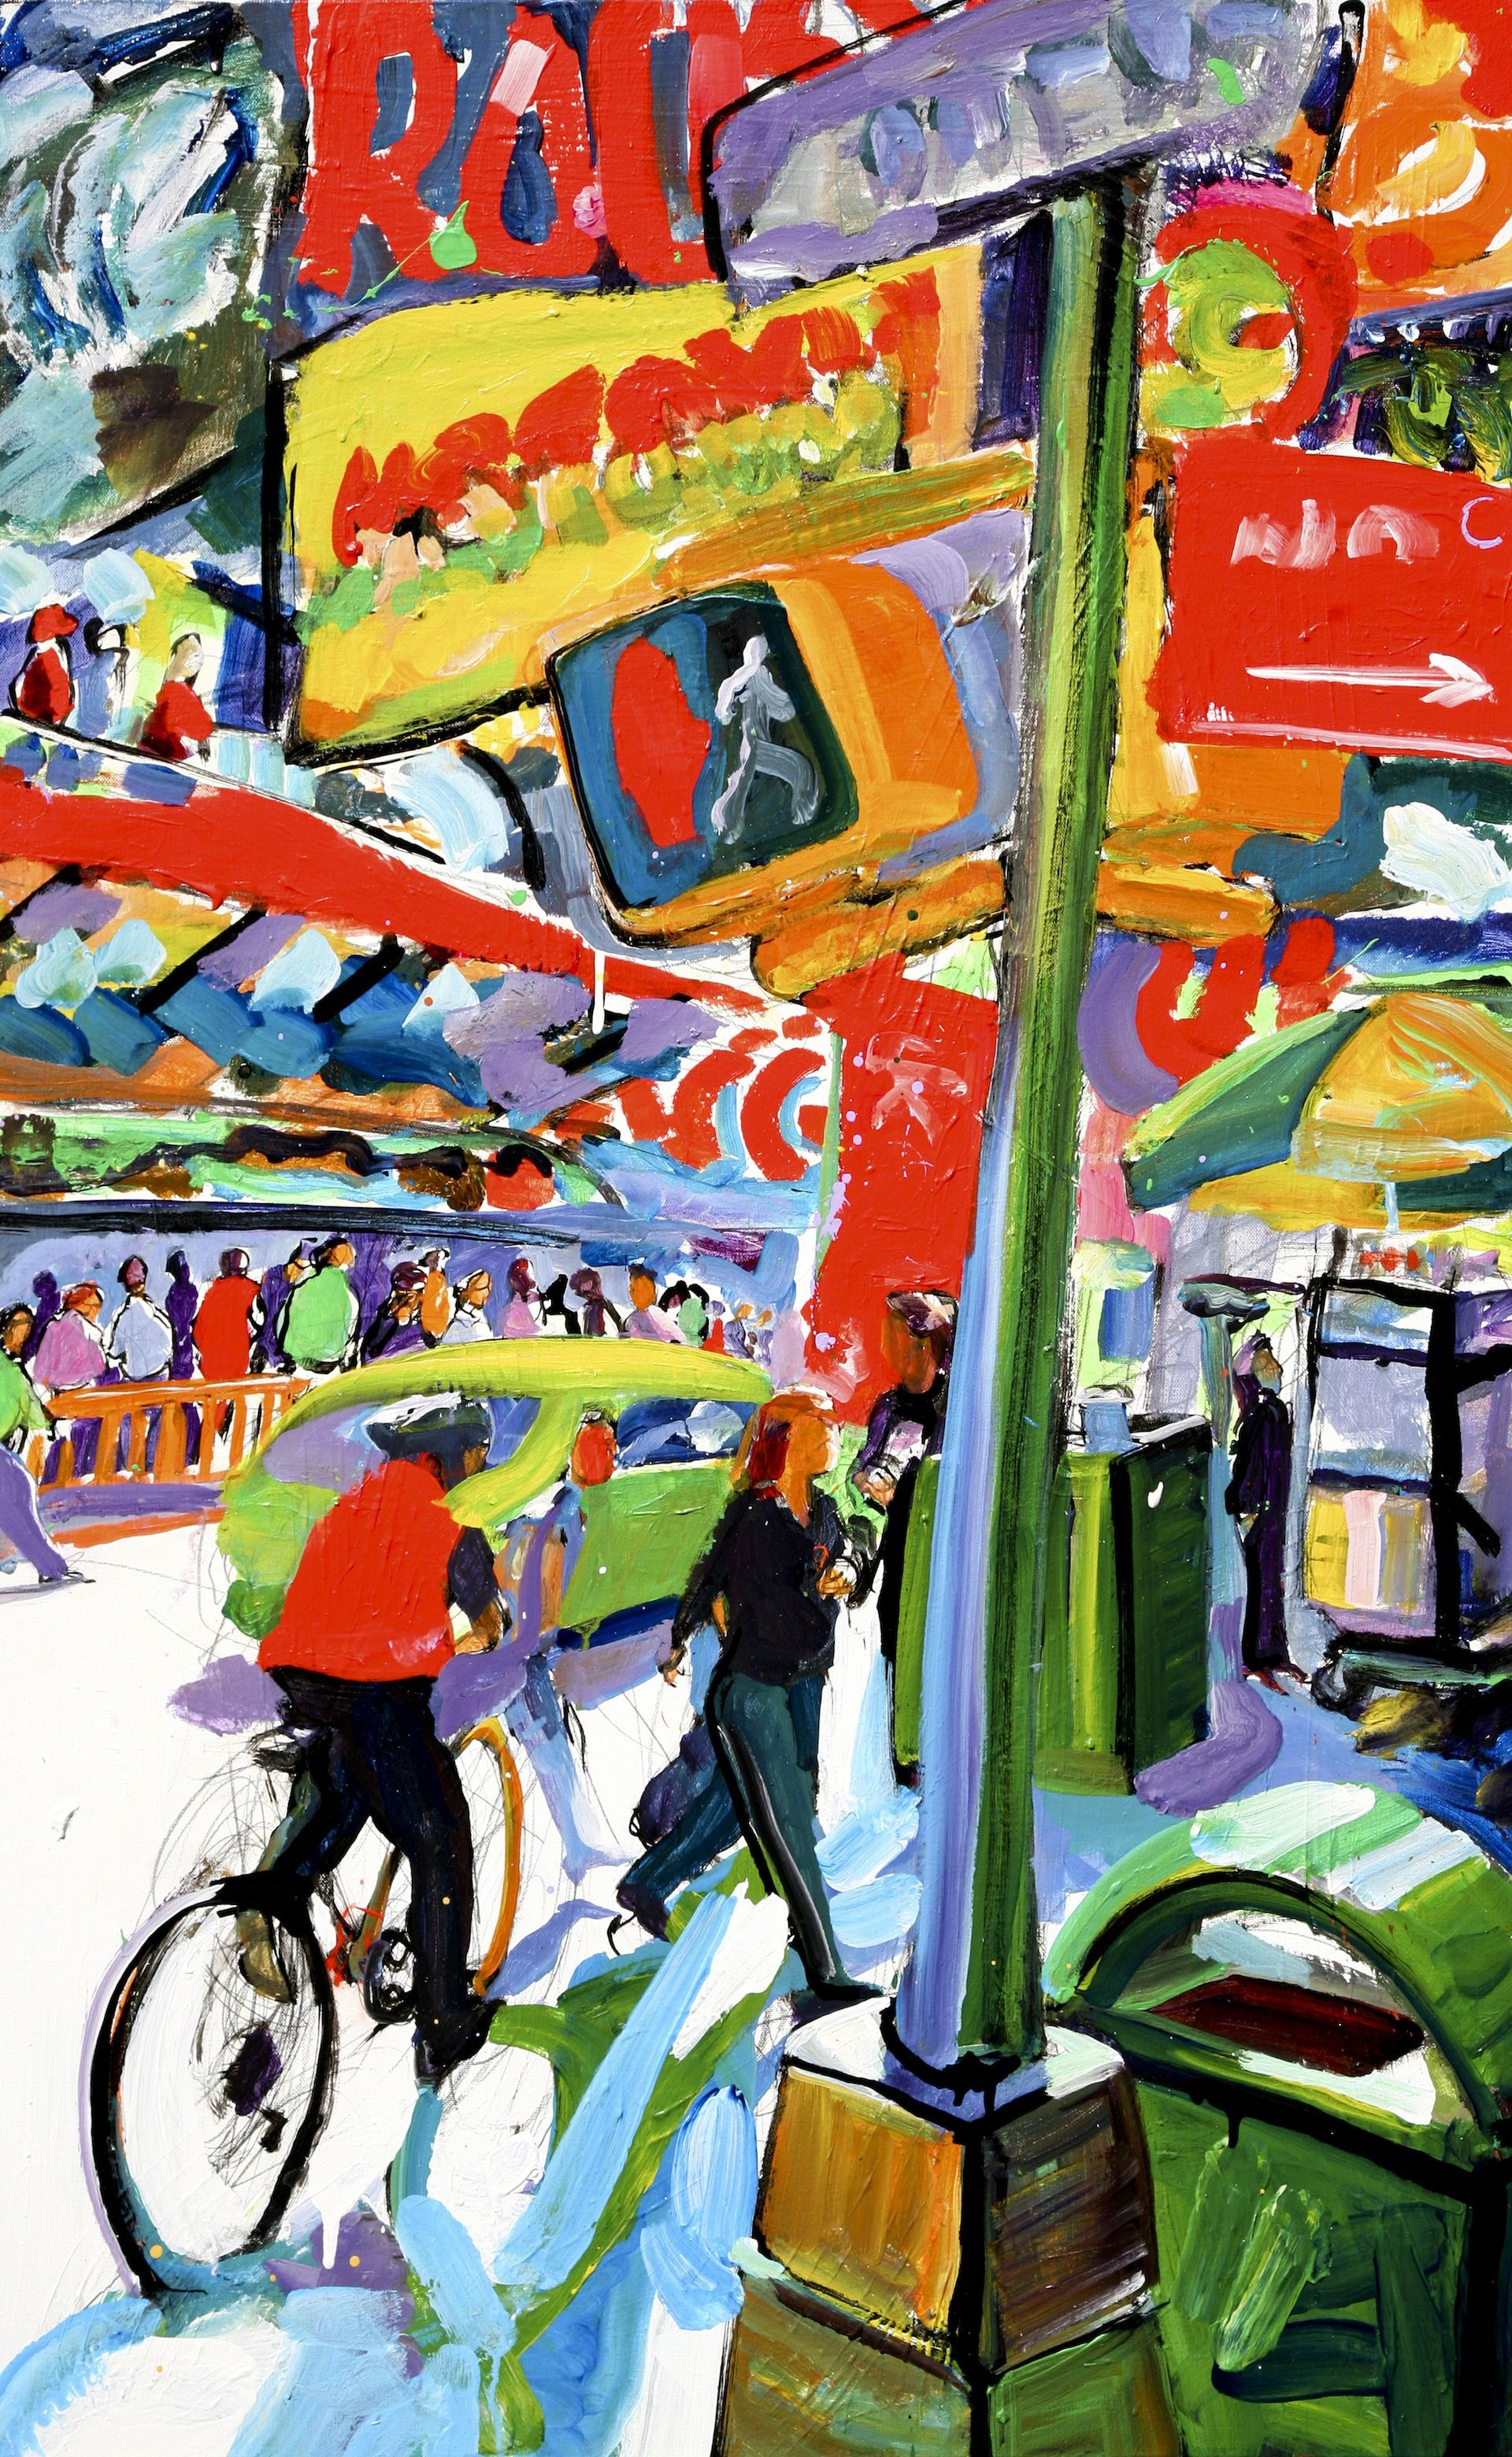 Comedy Central Guy In Times Square Galerie Barbara Von Stechow Germany Painting Art Comedy Central